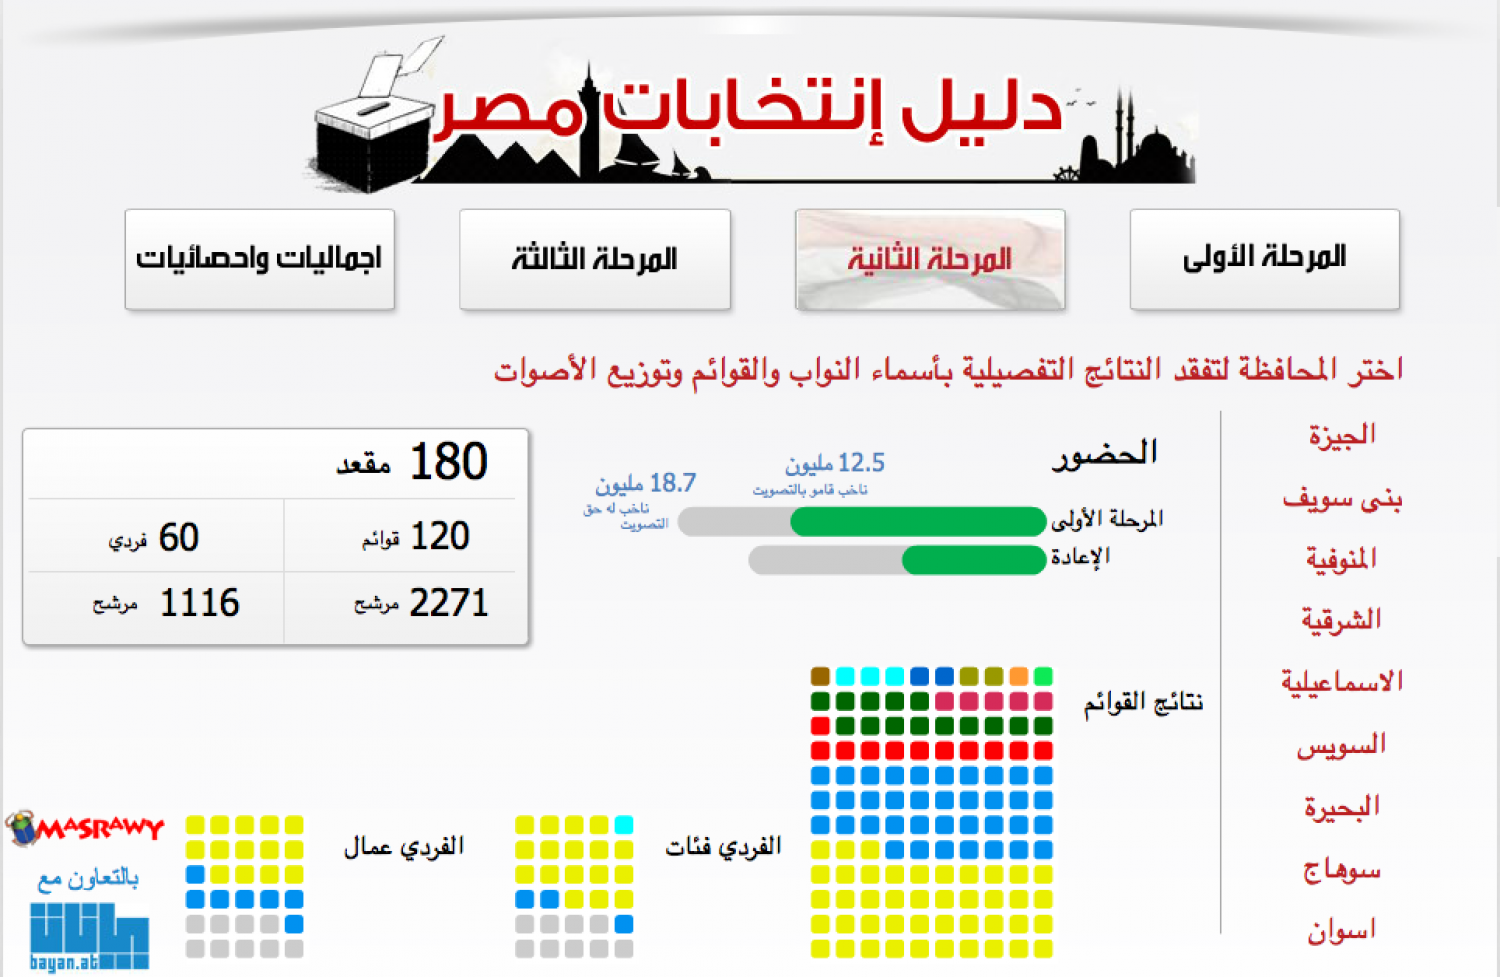 2012 Egyptian Parliamentary Elections Infographic